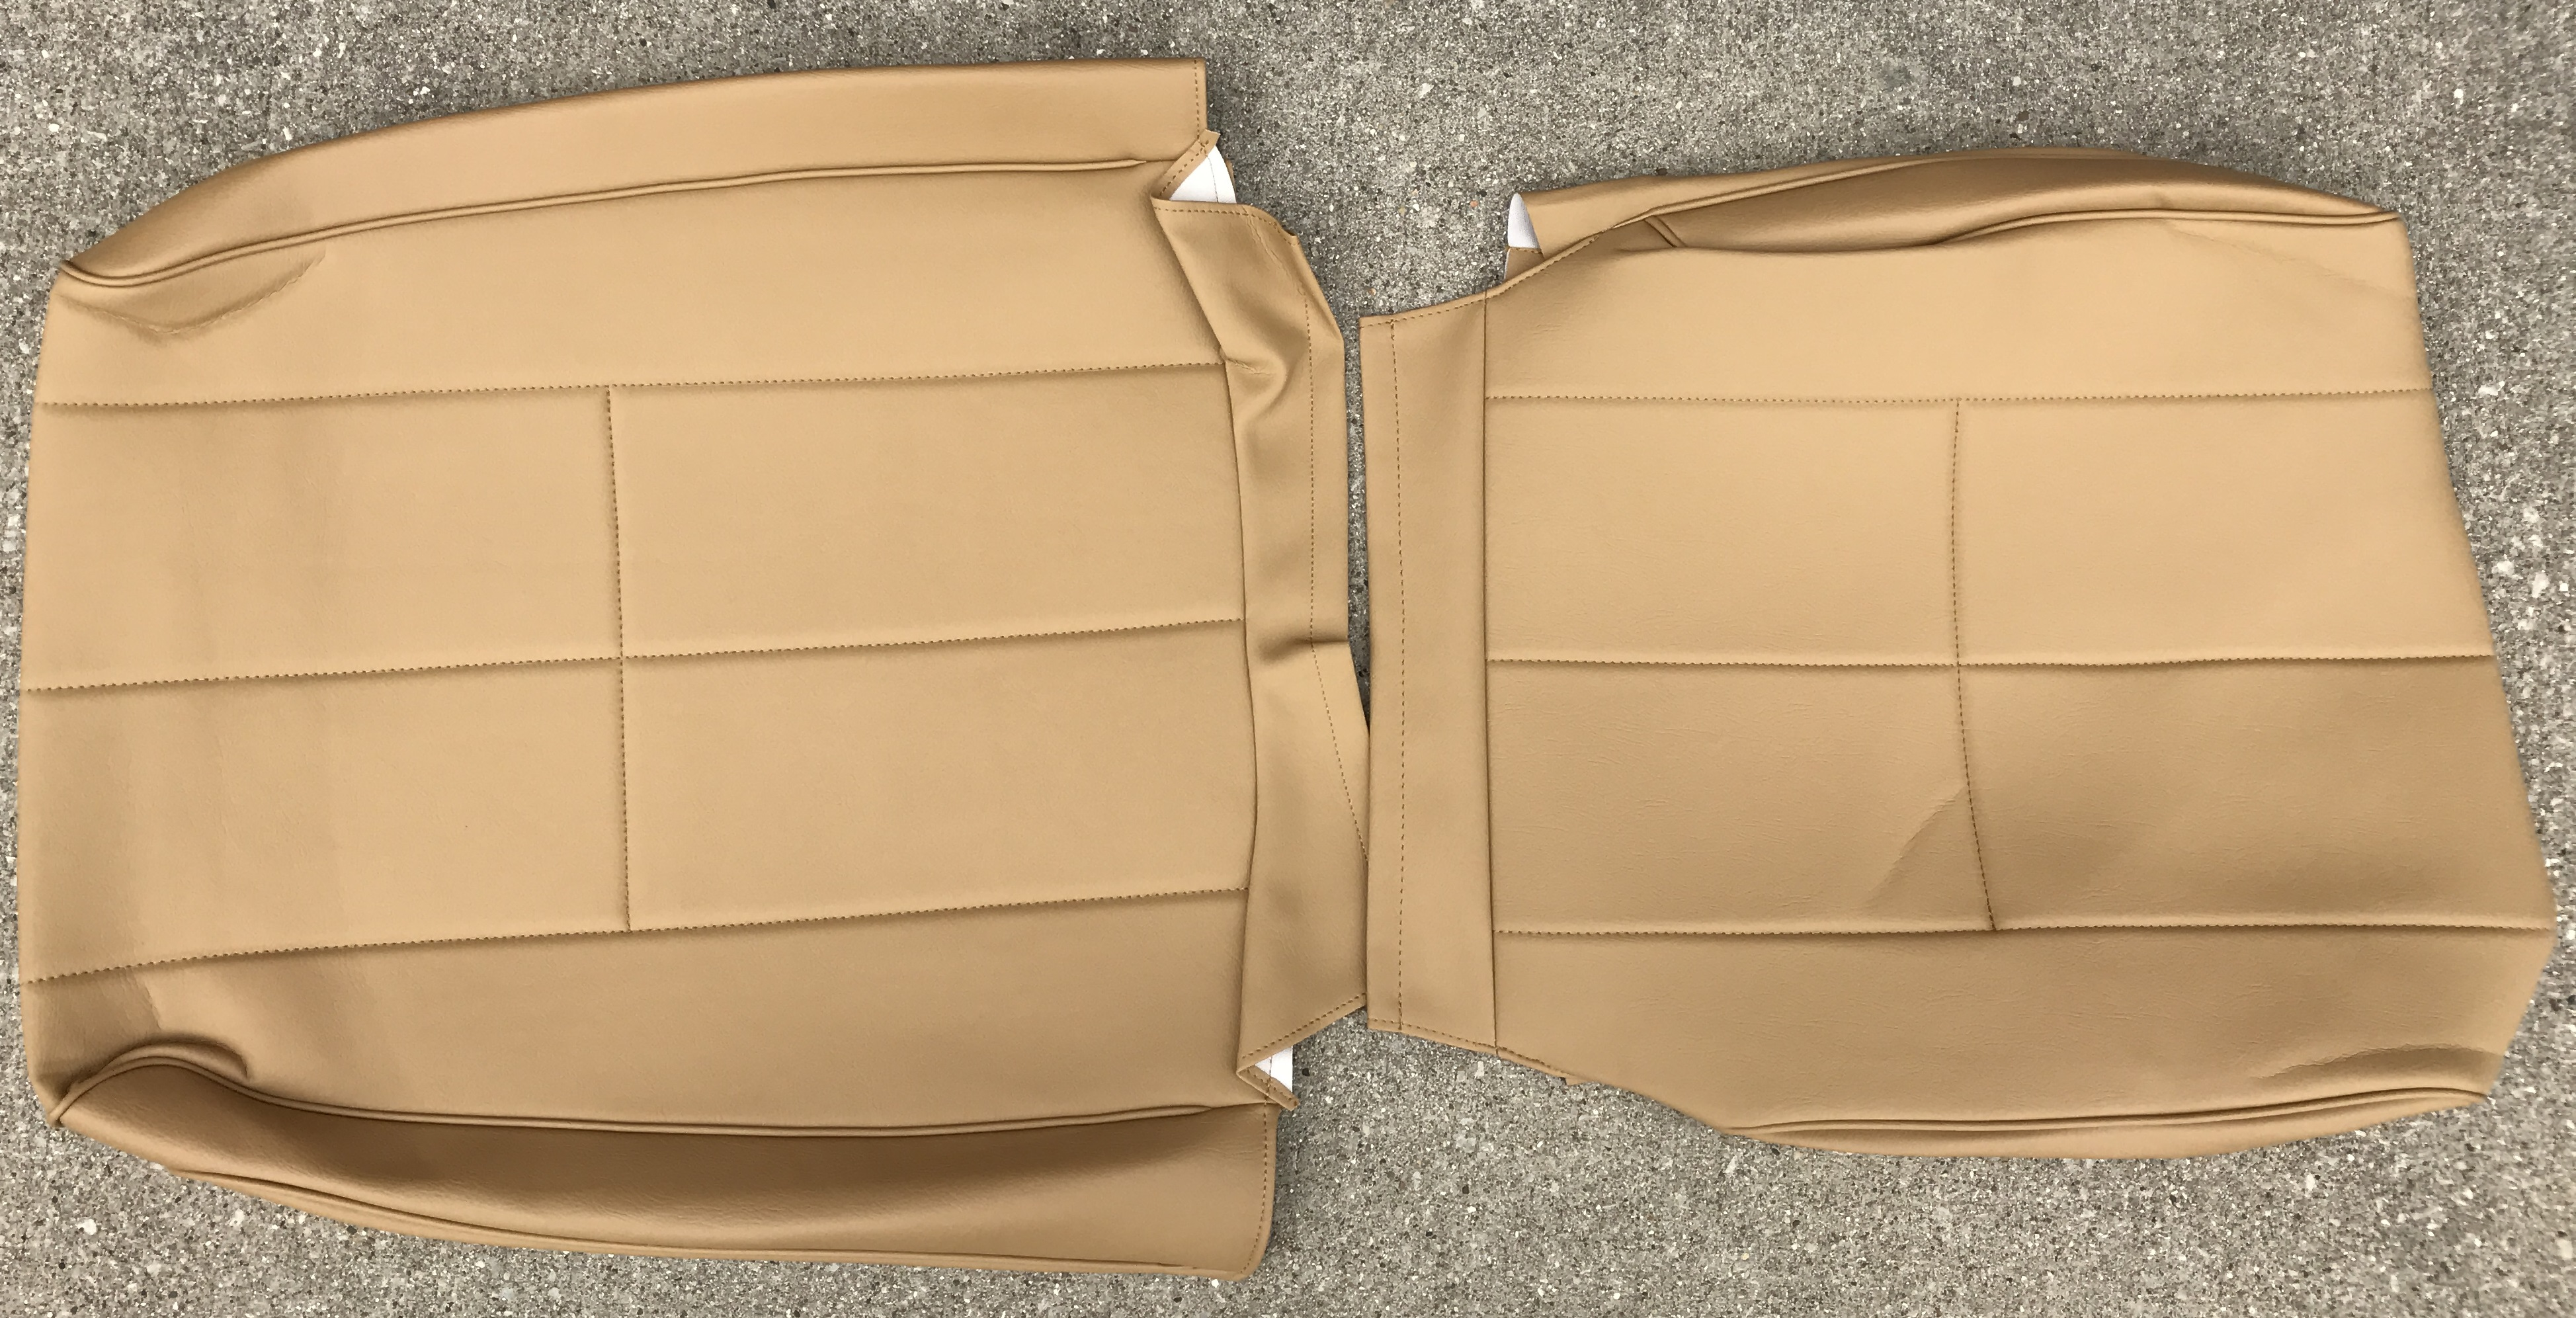 Volvo 240 Vinyl Seat Cover Beige 3 Single Stitched Lines